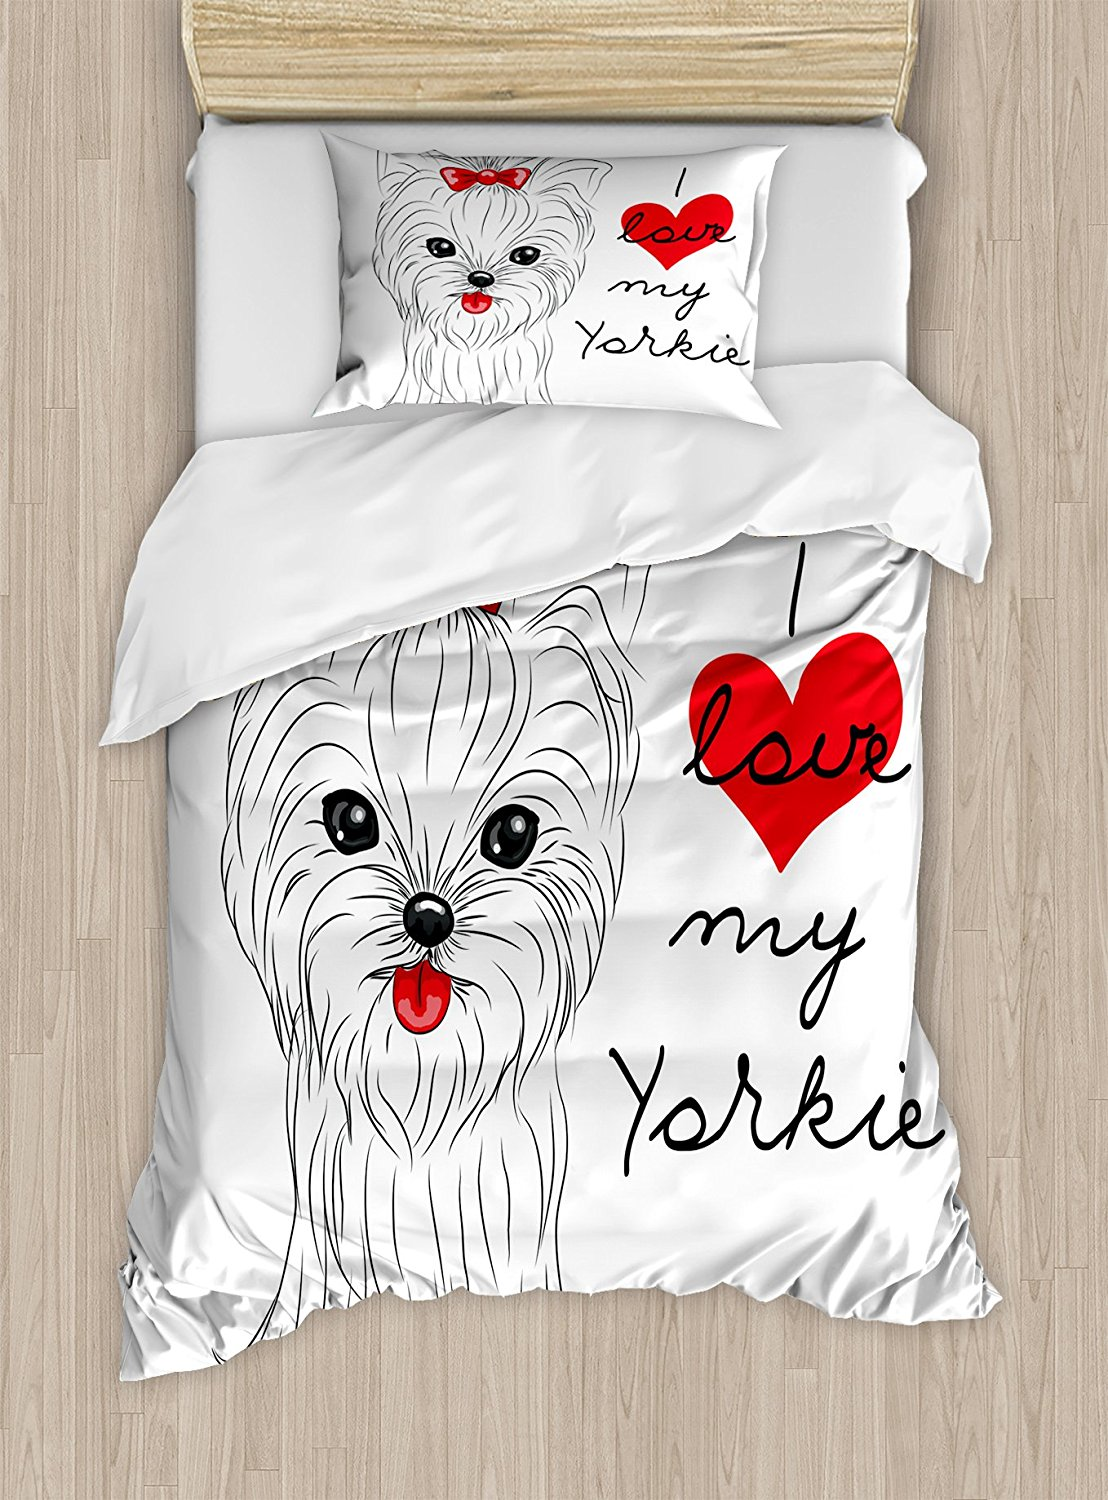 Yorkie Duvet Cover Set I Love My Yorkie Cute Terrier with its Out Adorable Yorkshire Terrier, Decorative 4 Piece Bedding Set ...